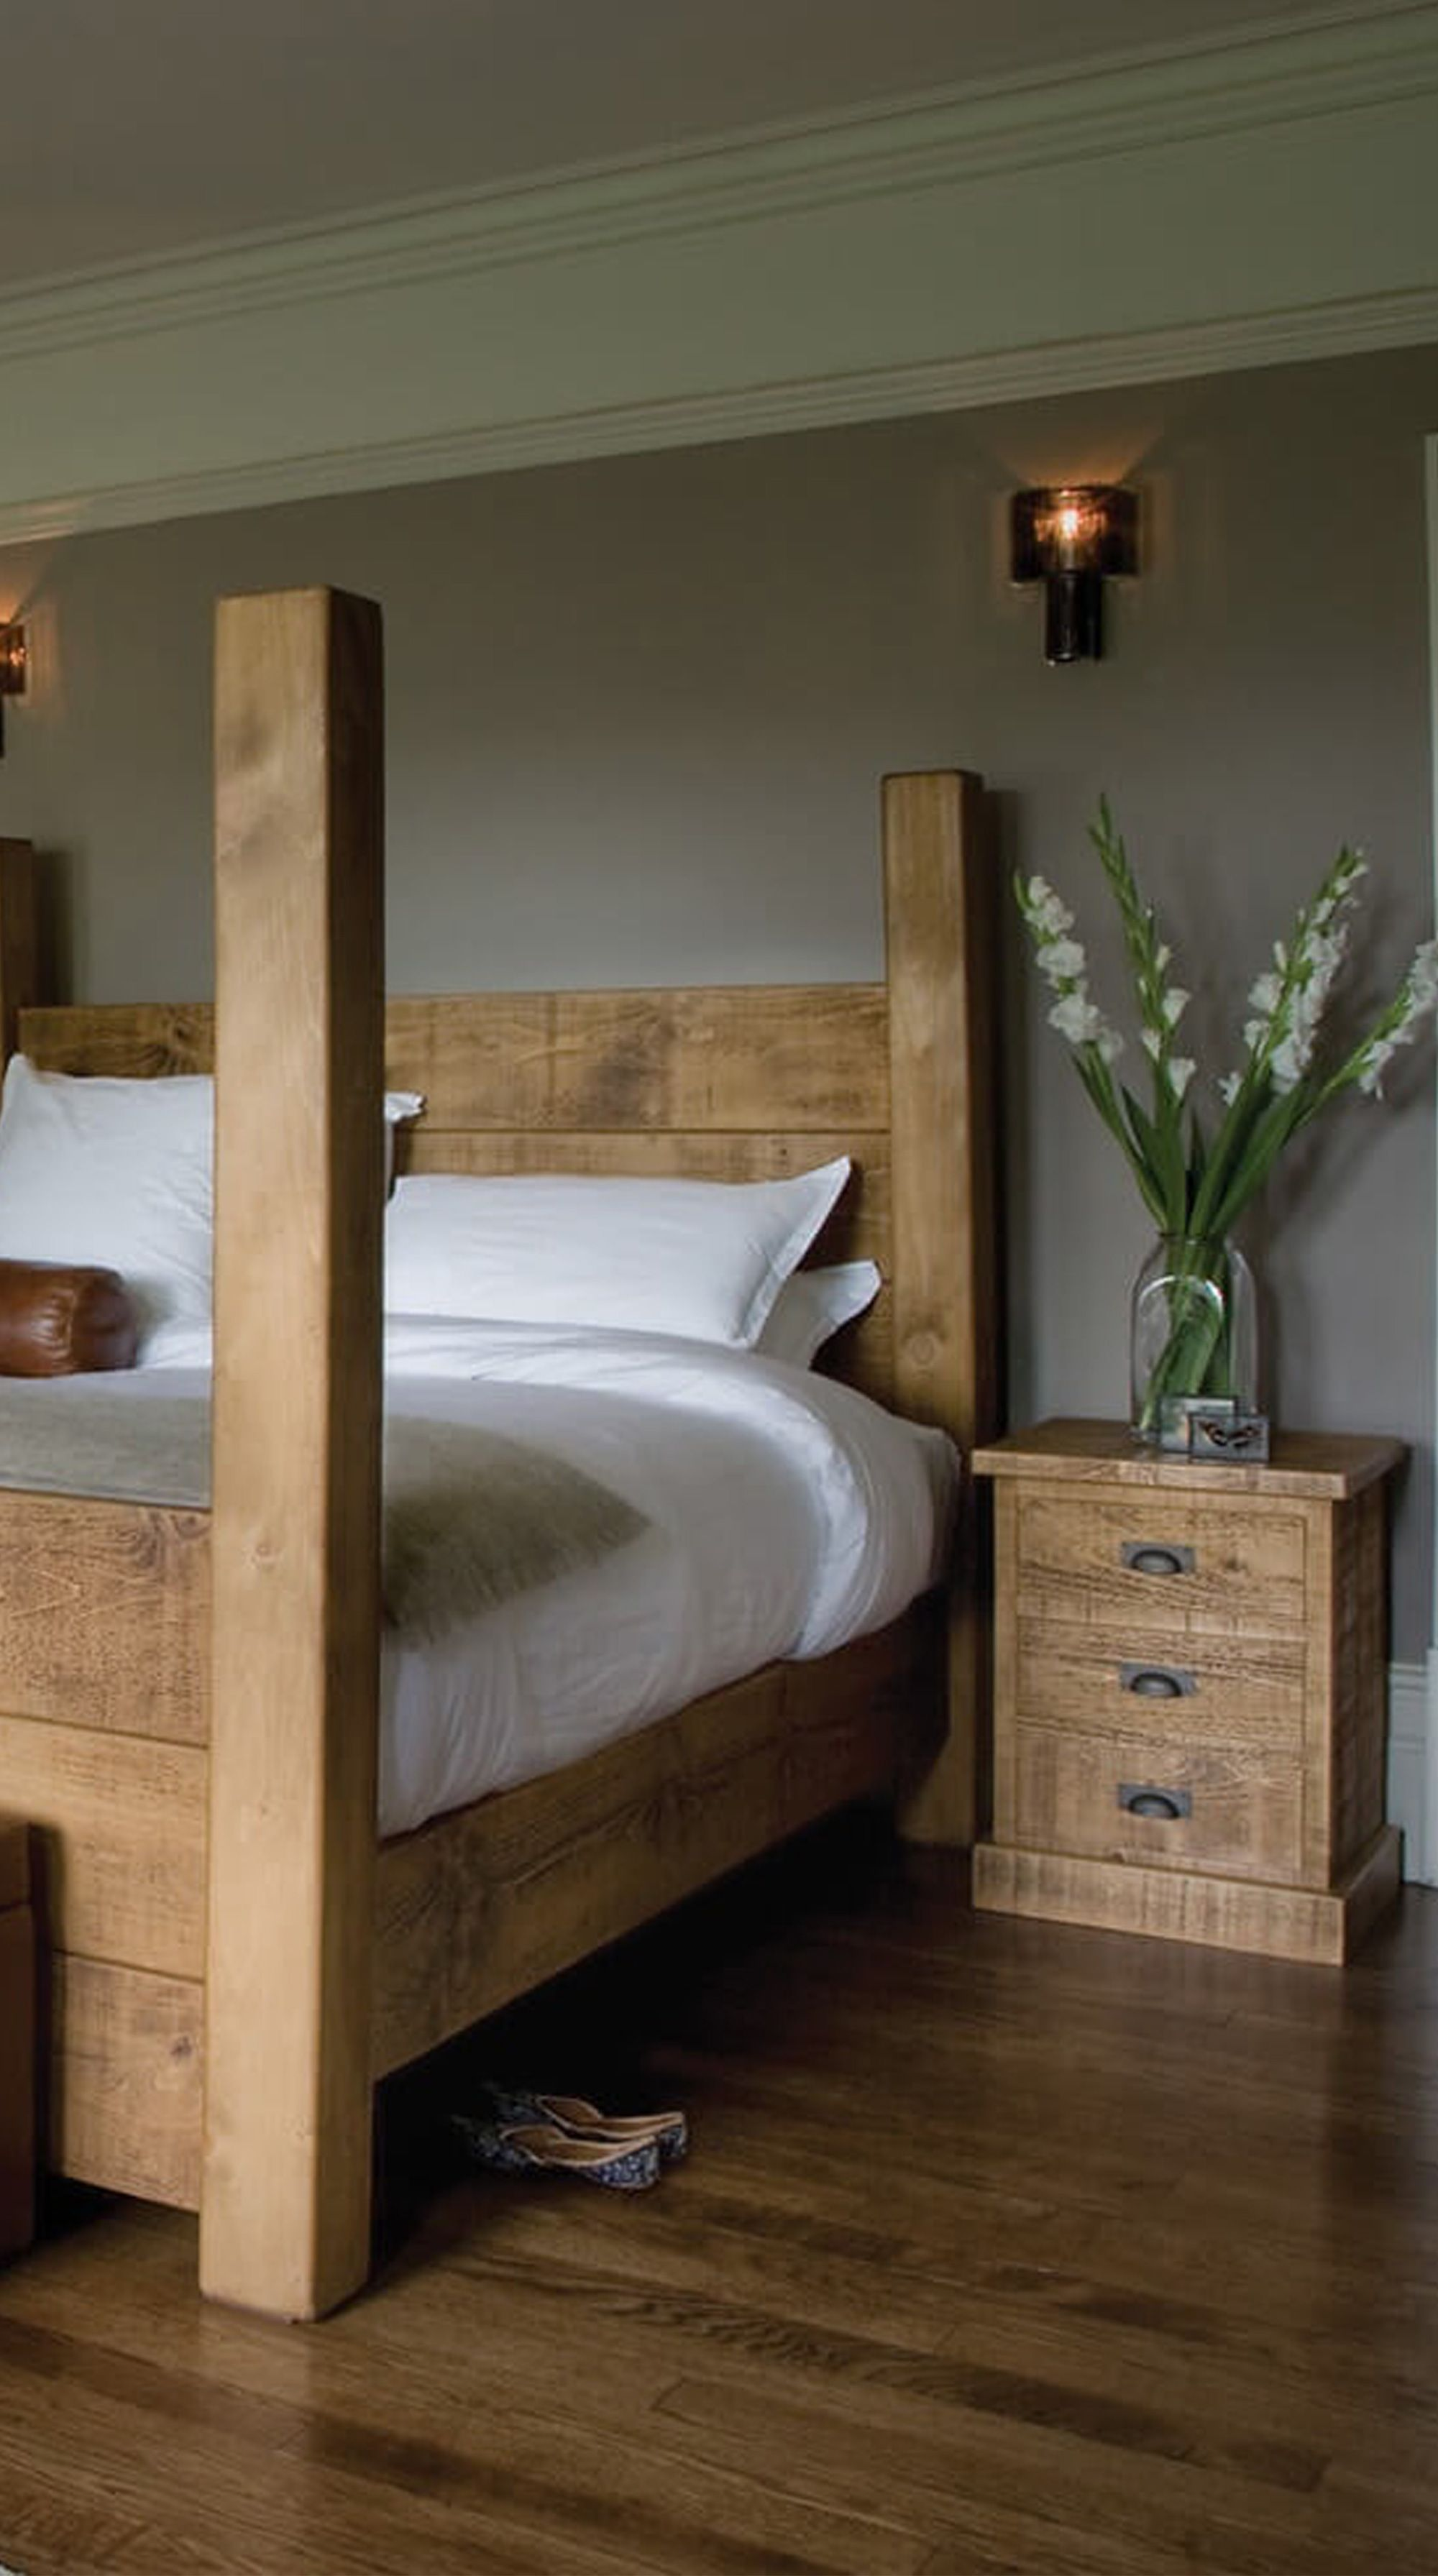 Indigo Merchant\u0027s Four Poster Plank Bed, an imposing piece which ...